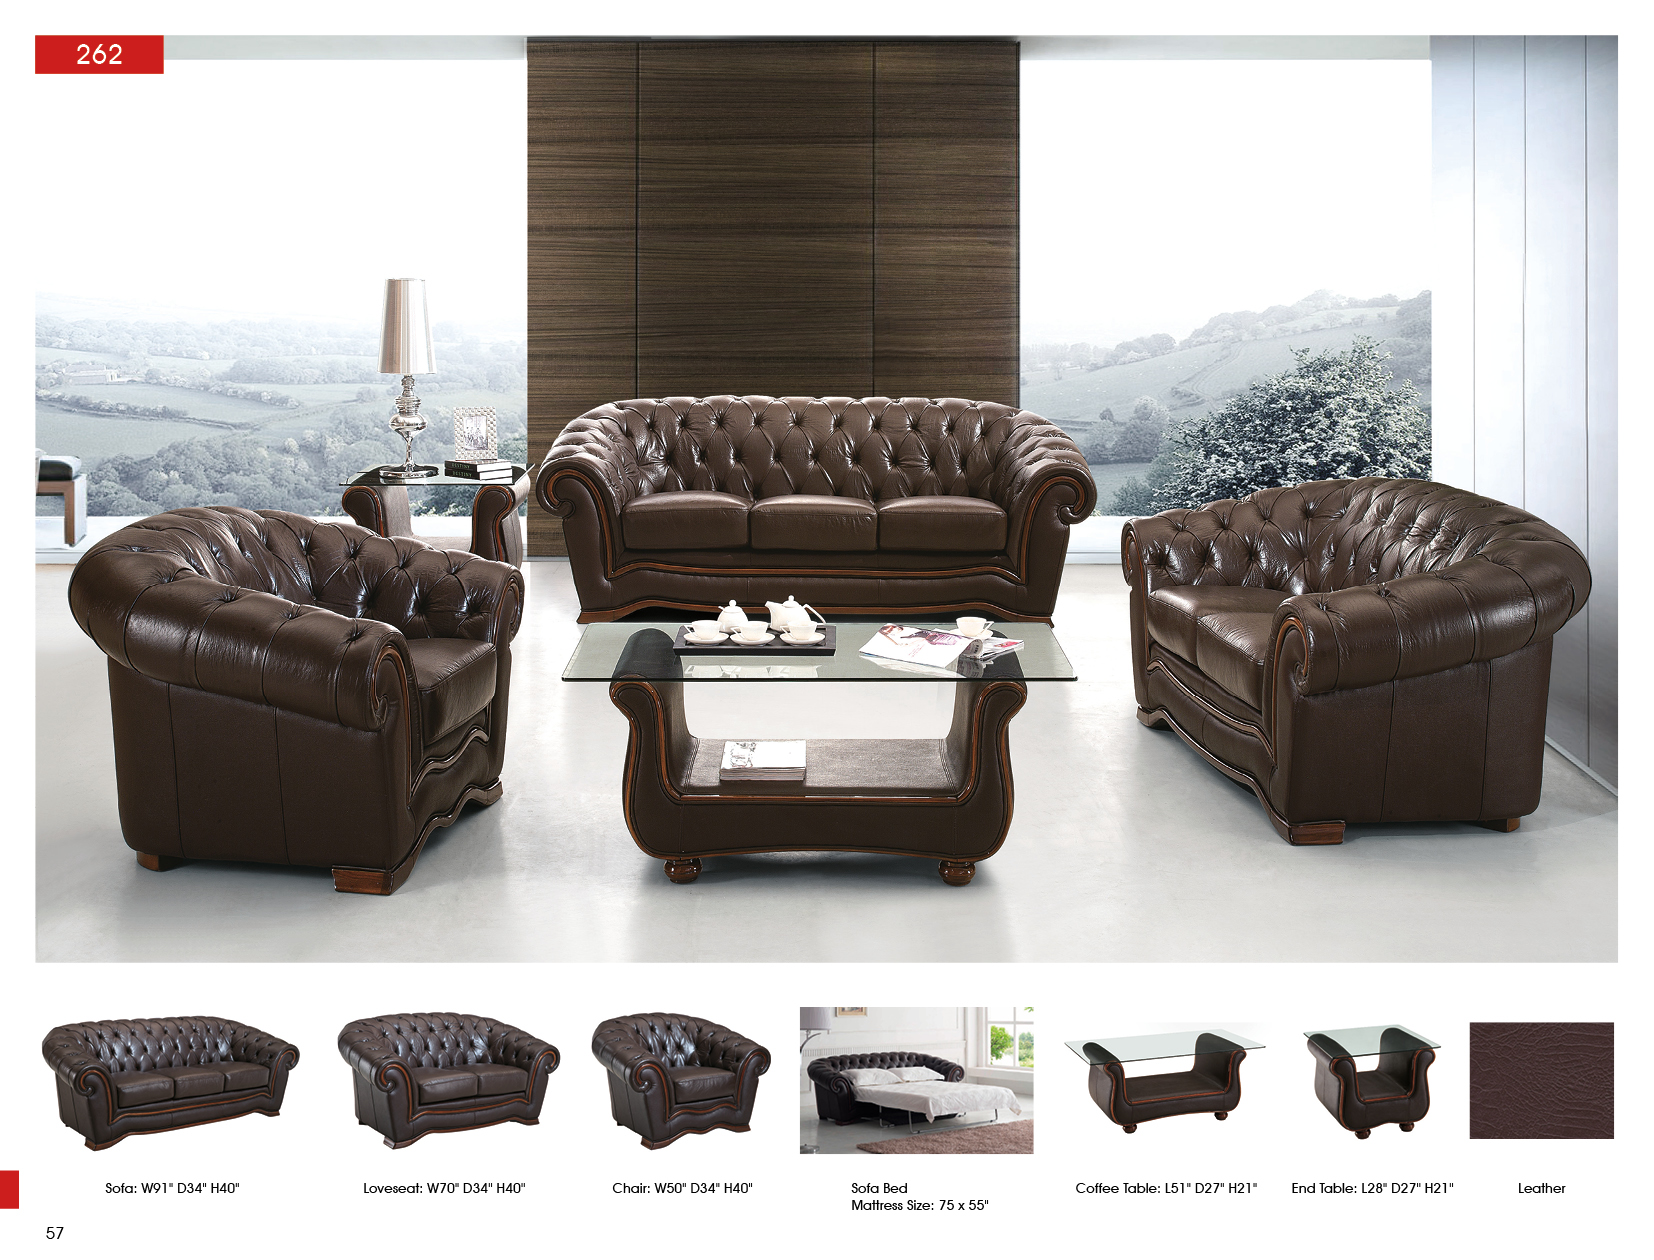 262 Full Leather Leather Classic 3 pcs Sets Living Room Furniture